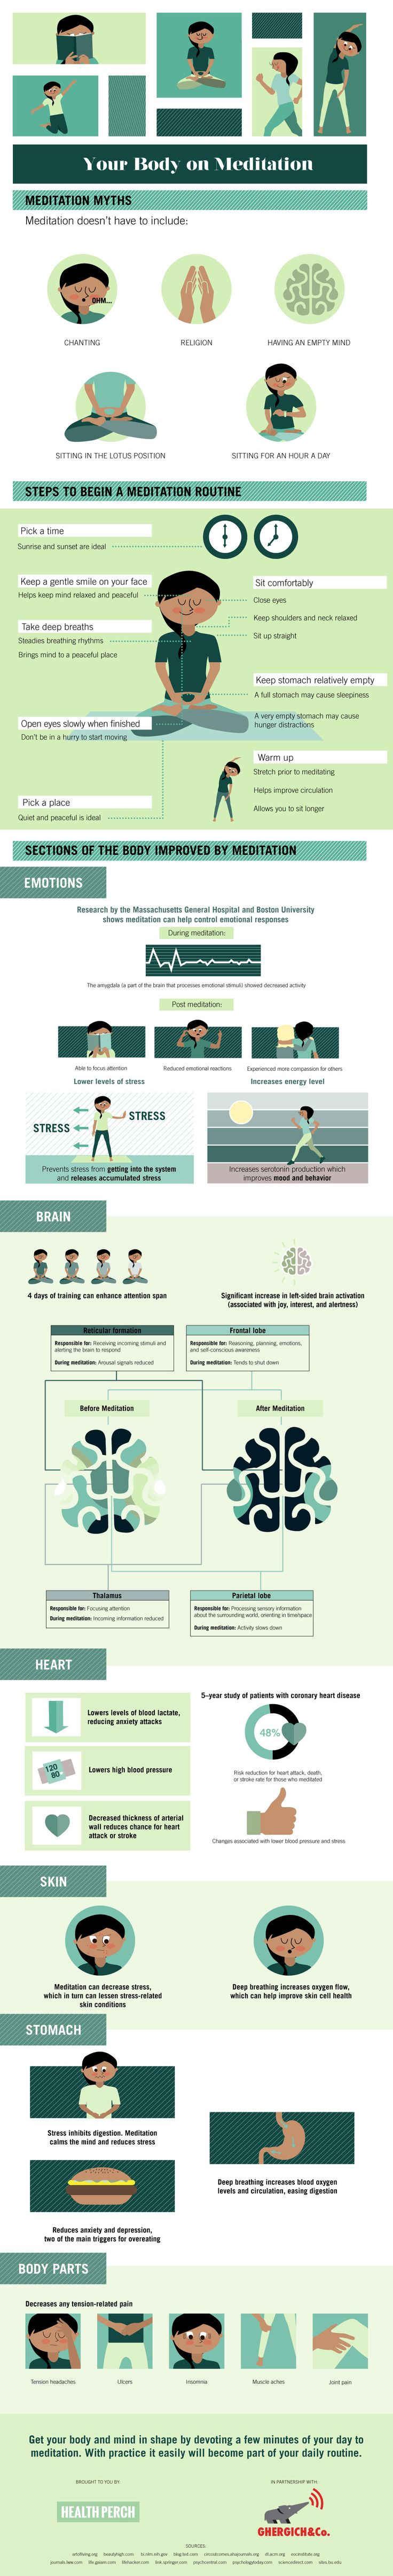 Meditation Infographic: This Is Your Body on Meditation